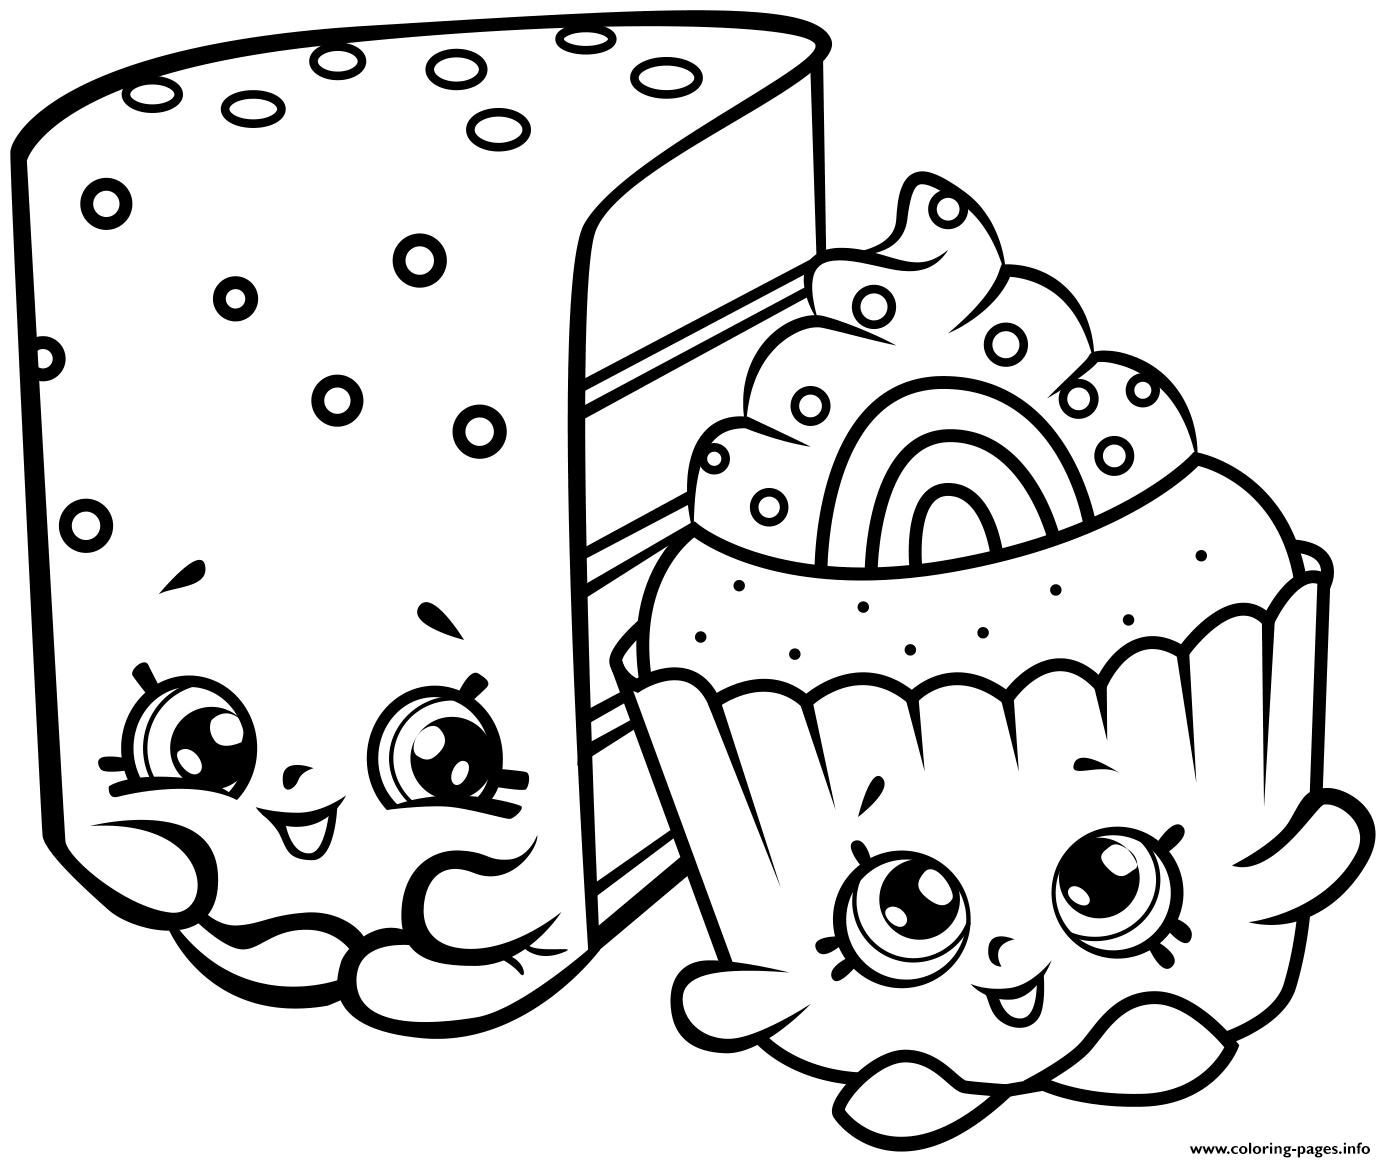 1474766540cute shopkins cakes besides shopkins coloring pages free download printable on coloring pages shopkins further shopkins coloring pages getcoloringpages  on coloring pages shopkins along with shopkins coloring pages best coloring pages for kids on coloring pages shopkins further shopkins coloring pages best coloring pages for kids on coloring pages shopkins